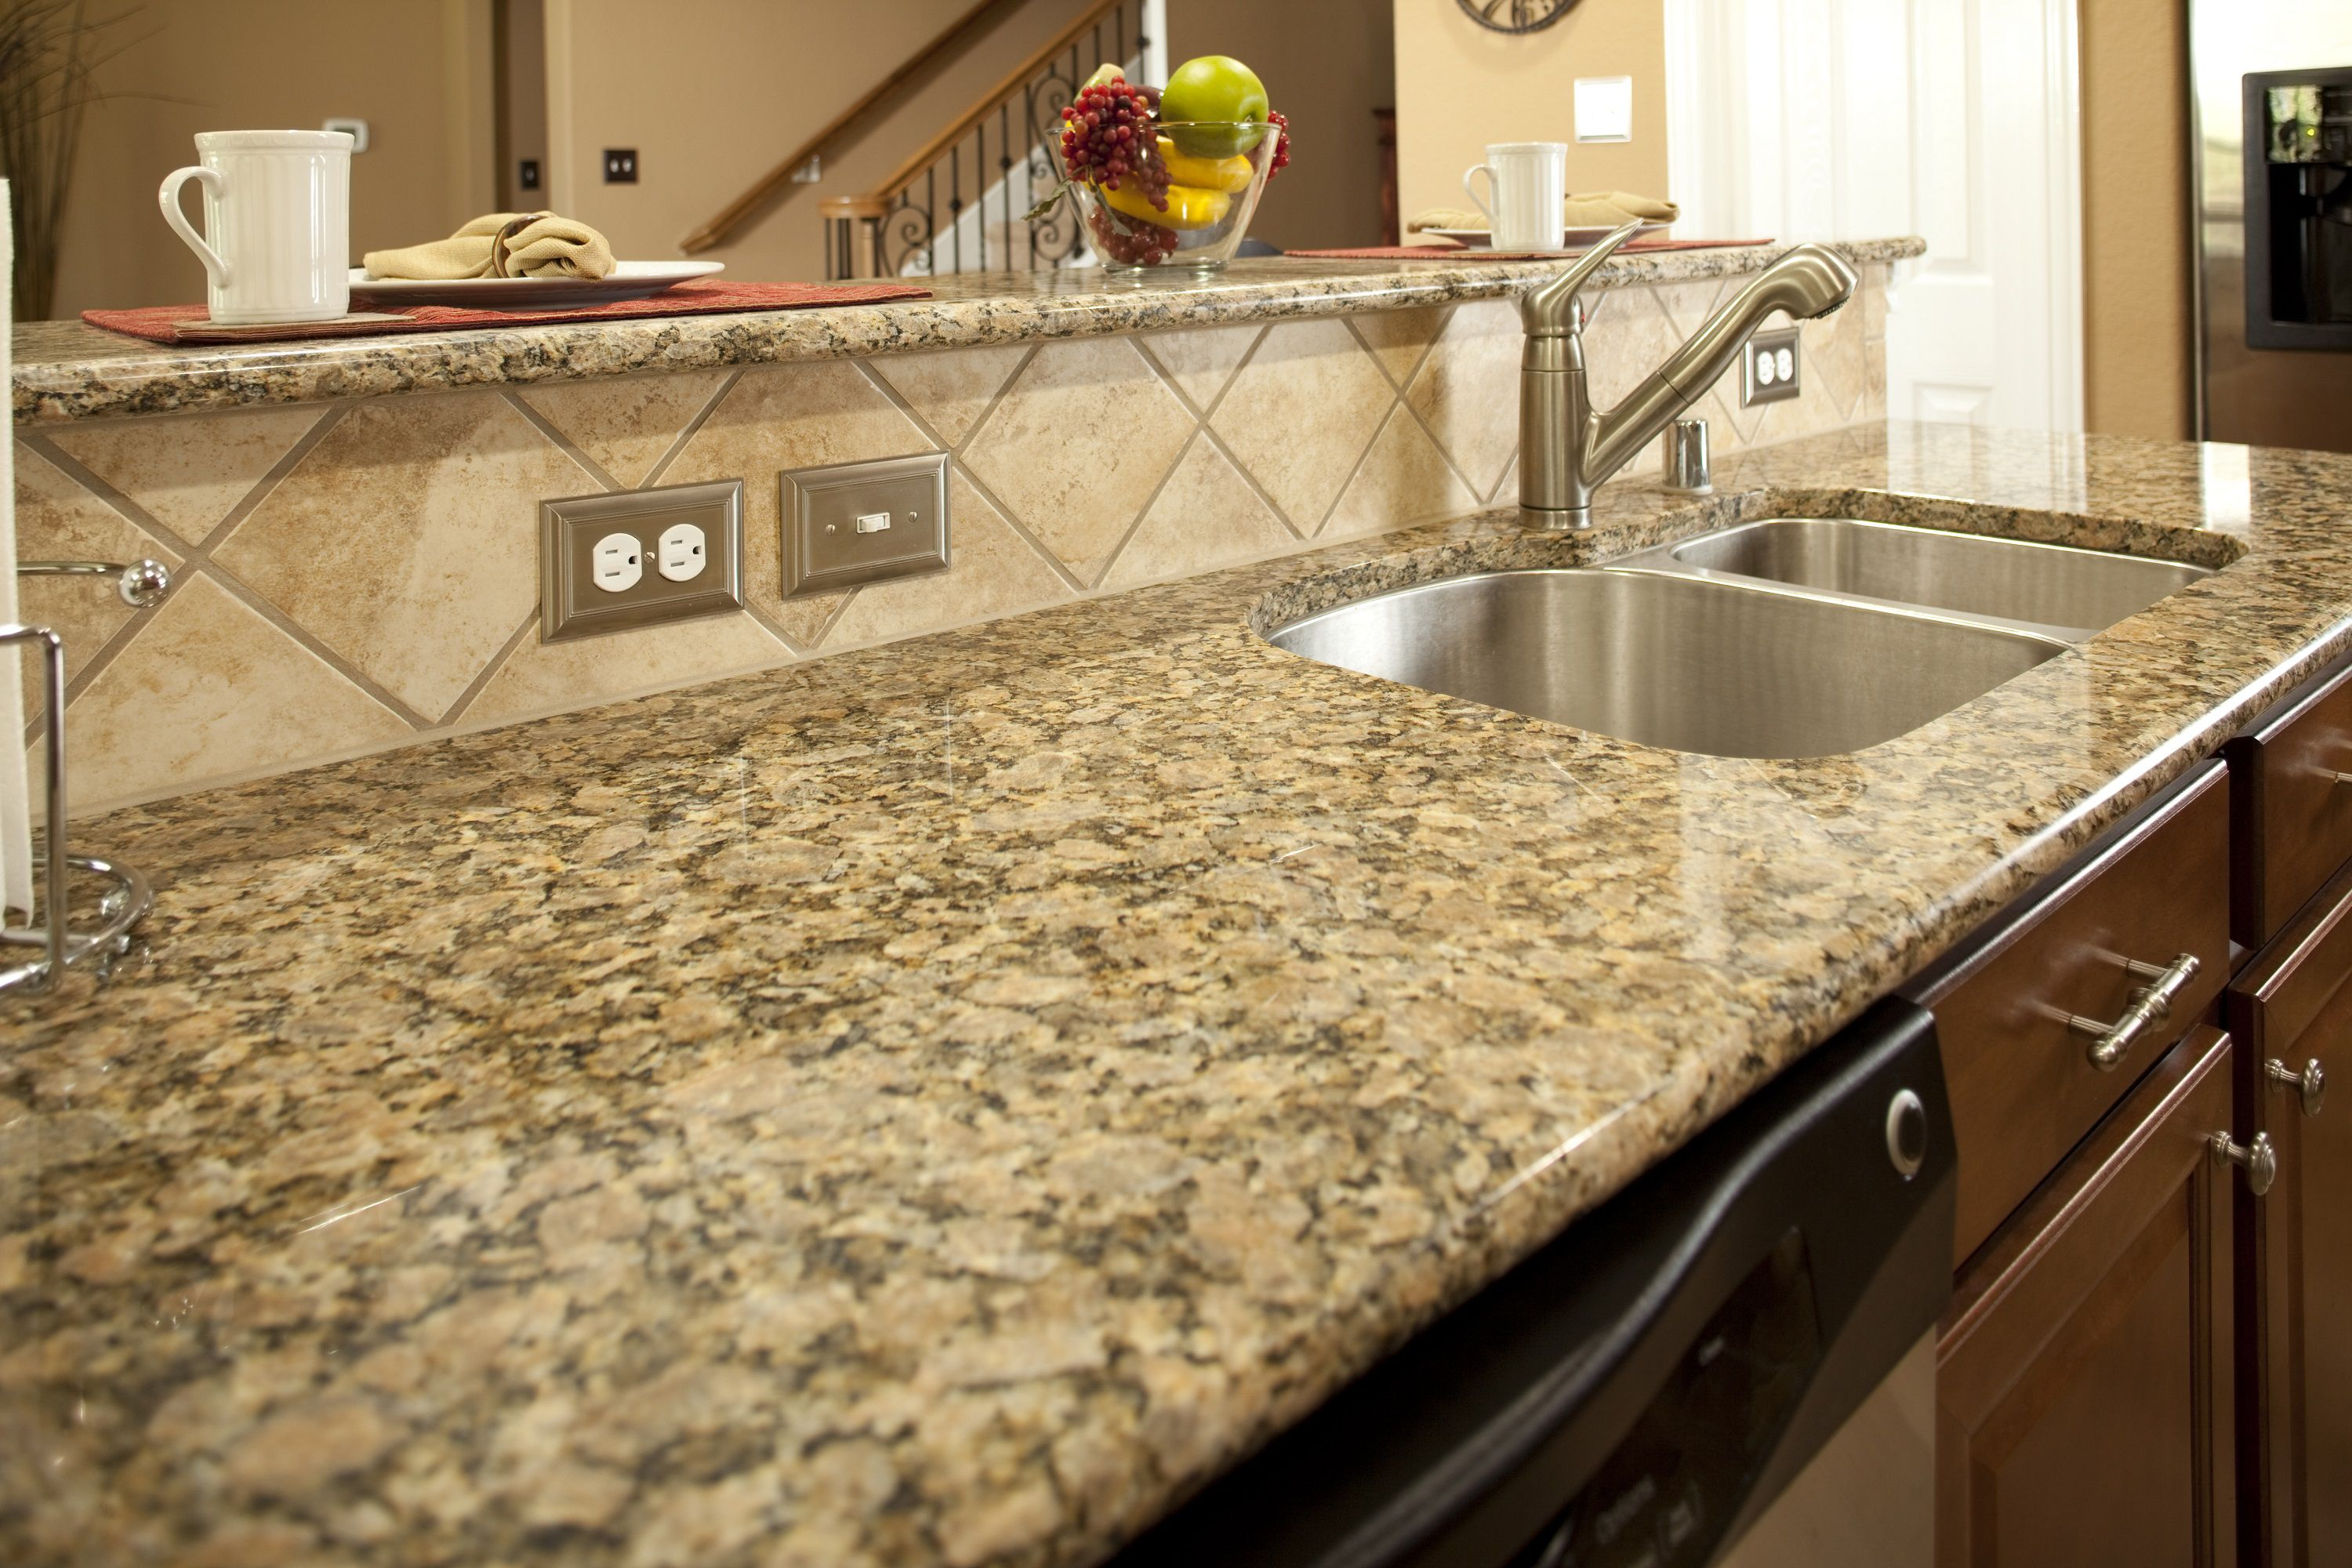 How To Clean Quartz Countertops Stains Cleaning Tips For 6 Types Of Stone Countertops